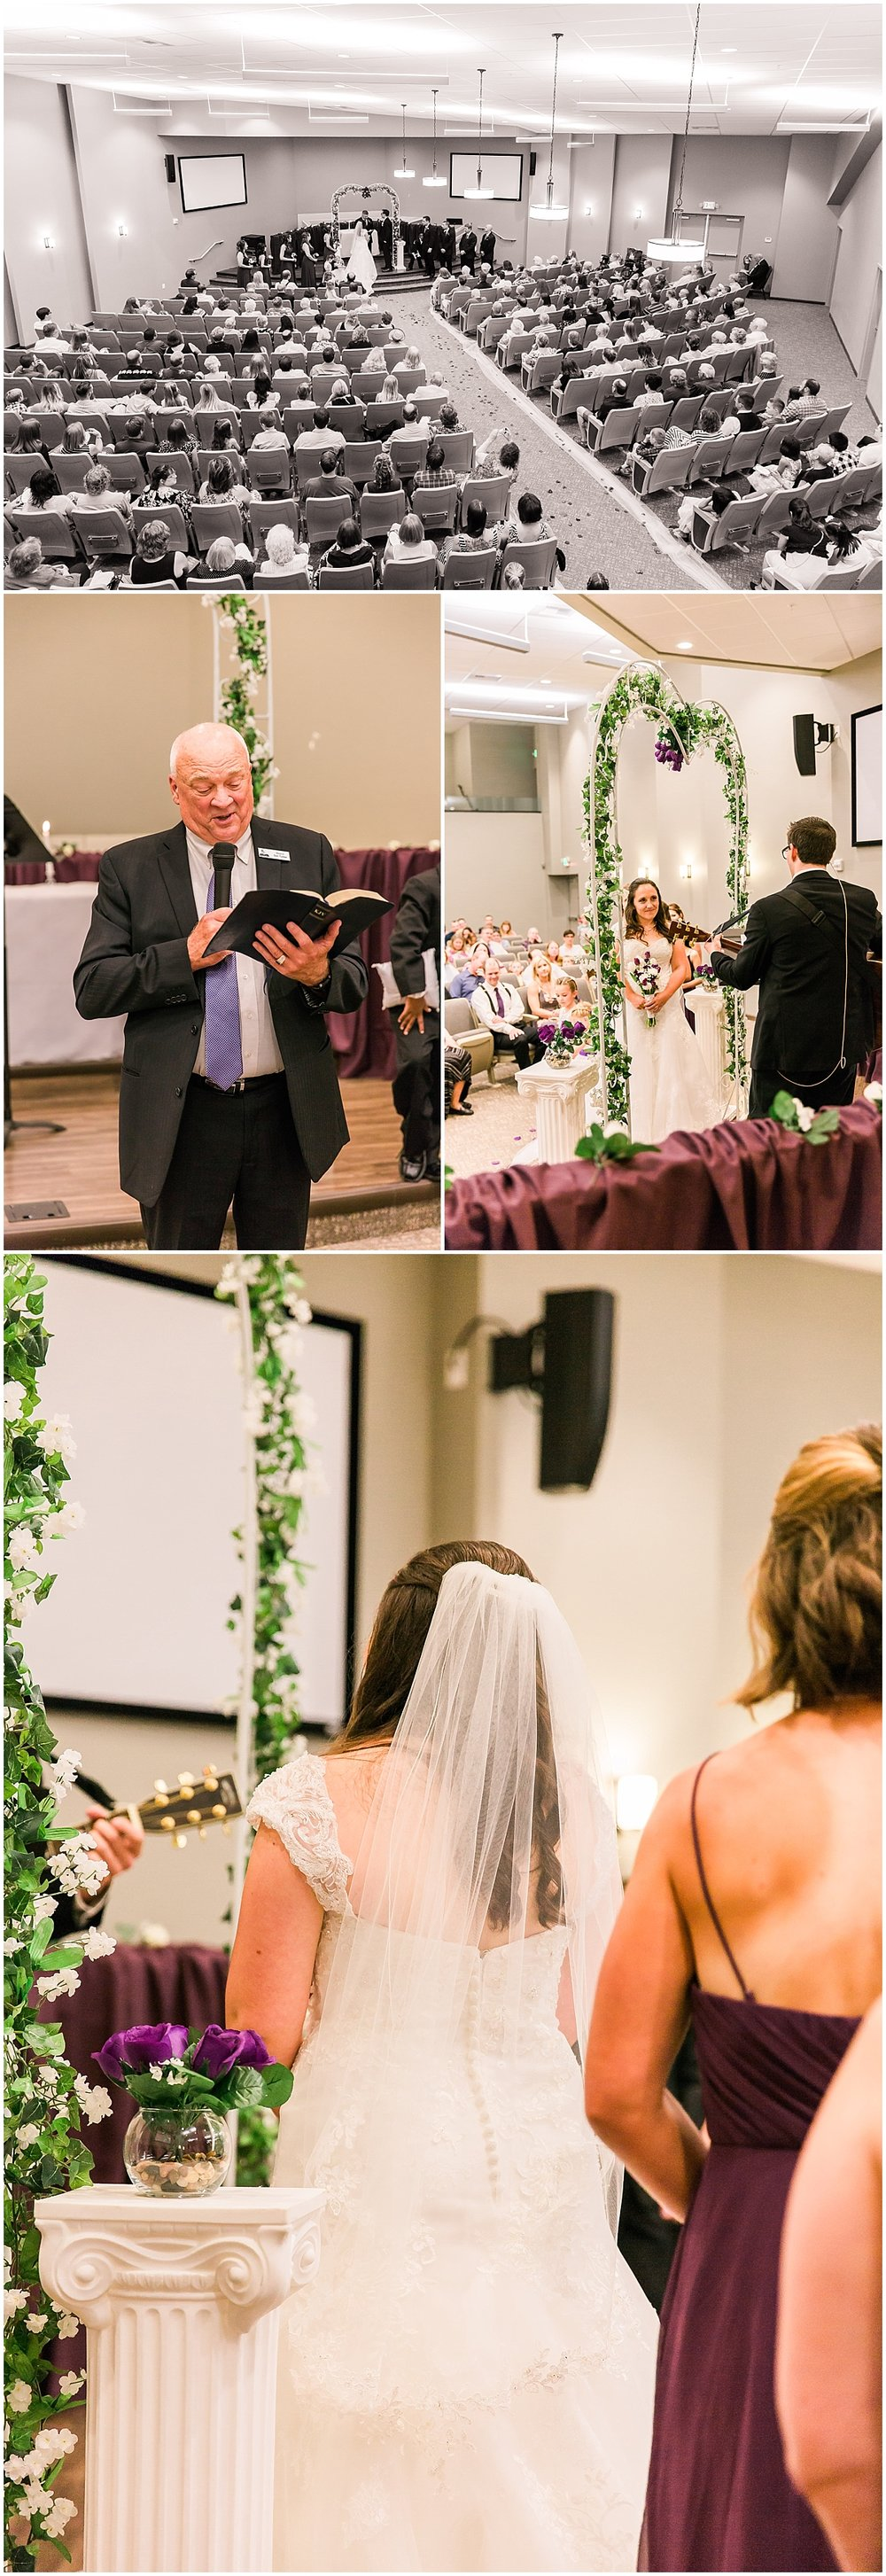 spokane church wedding